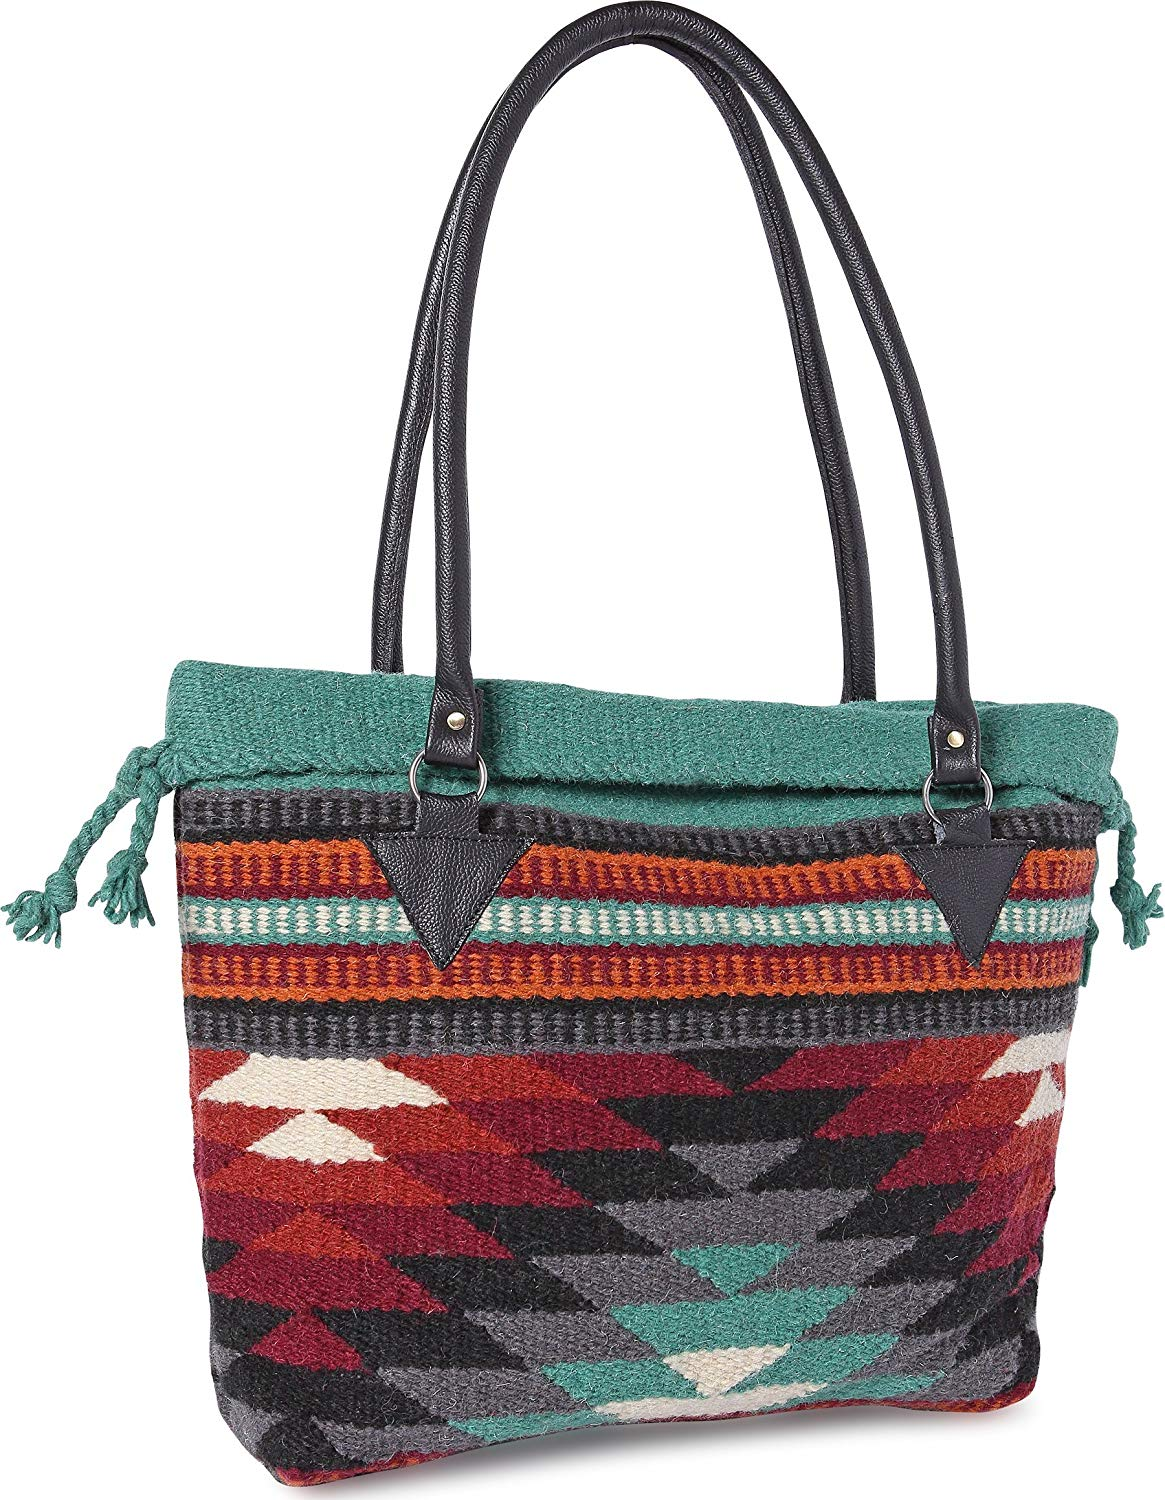 Handwoven Wool Malibu Purse with Genuine Leather Handles